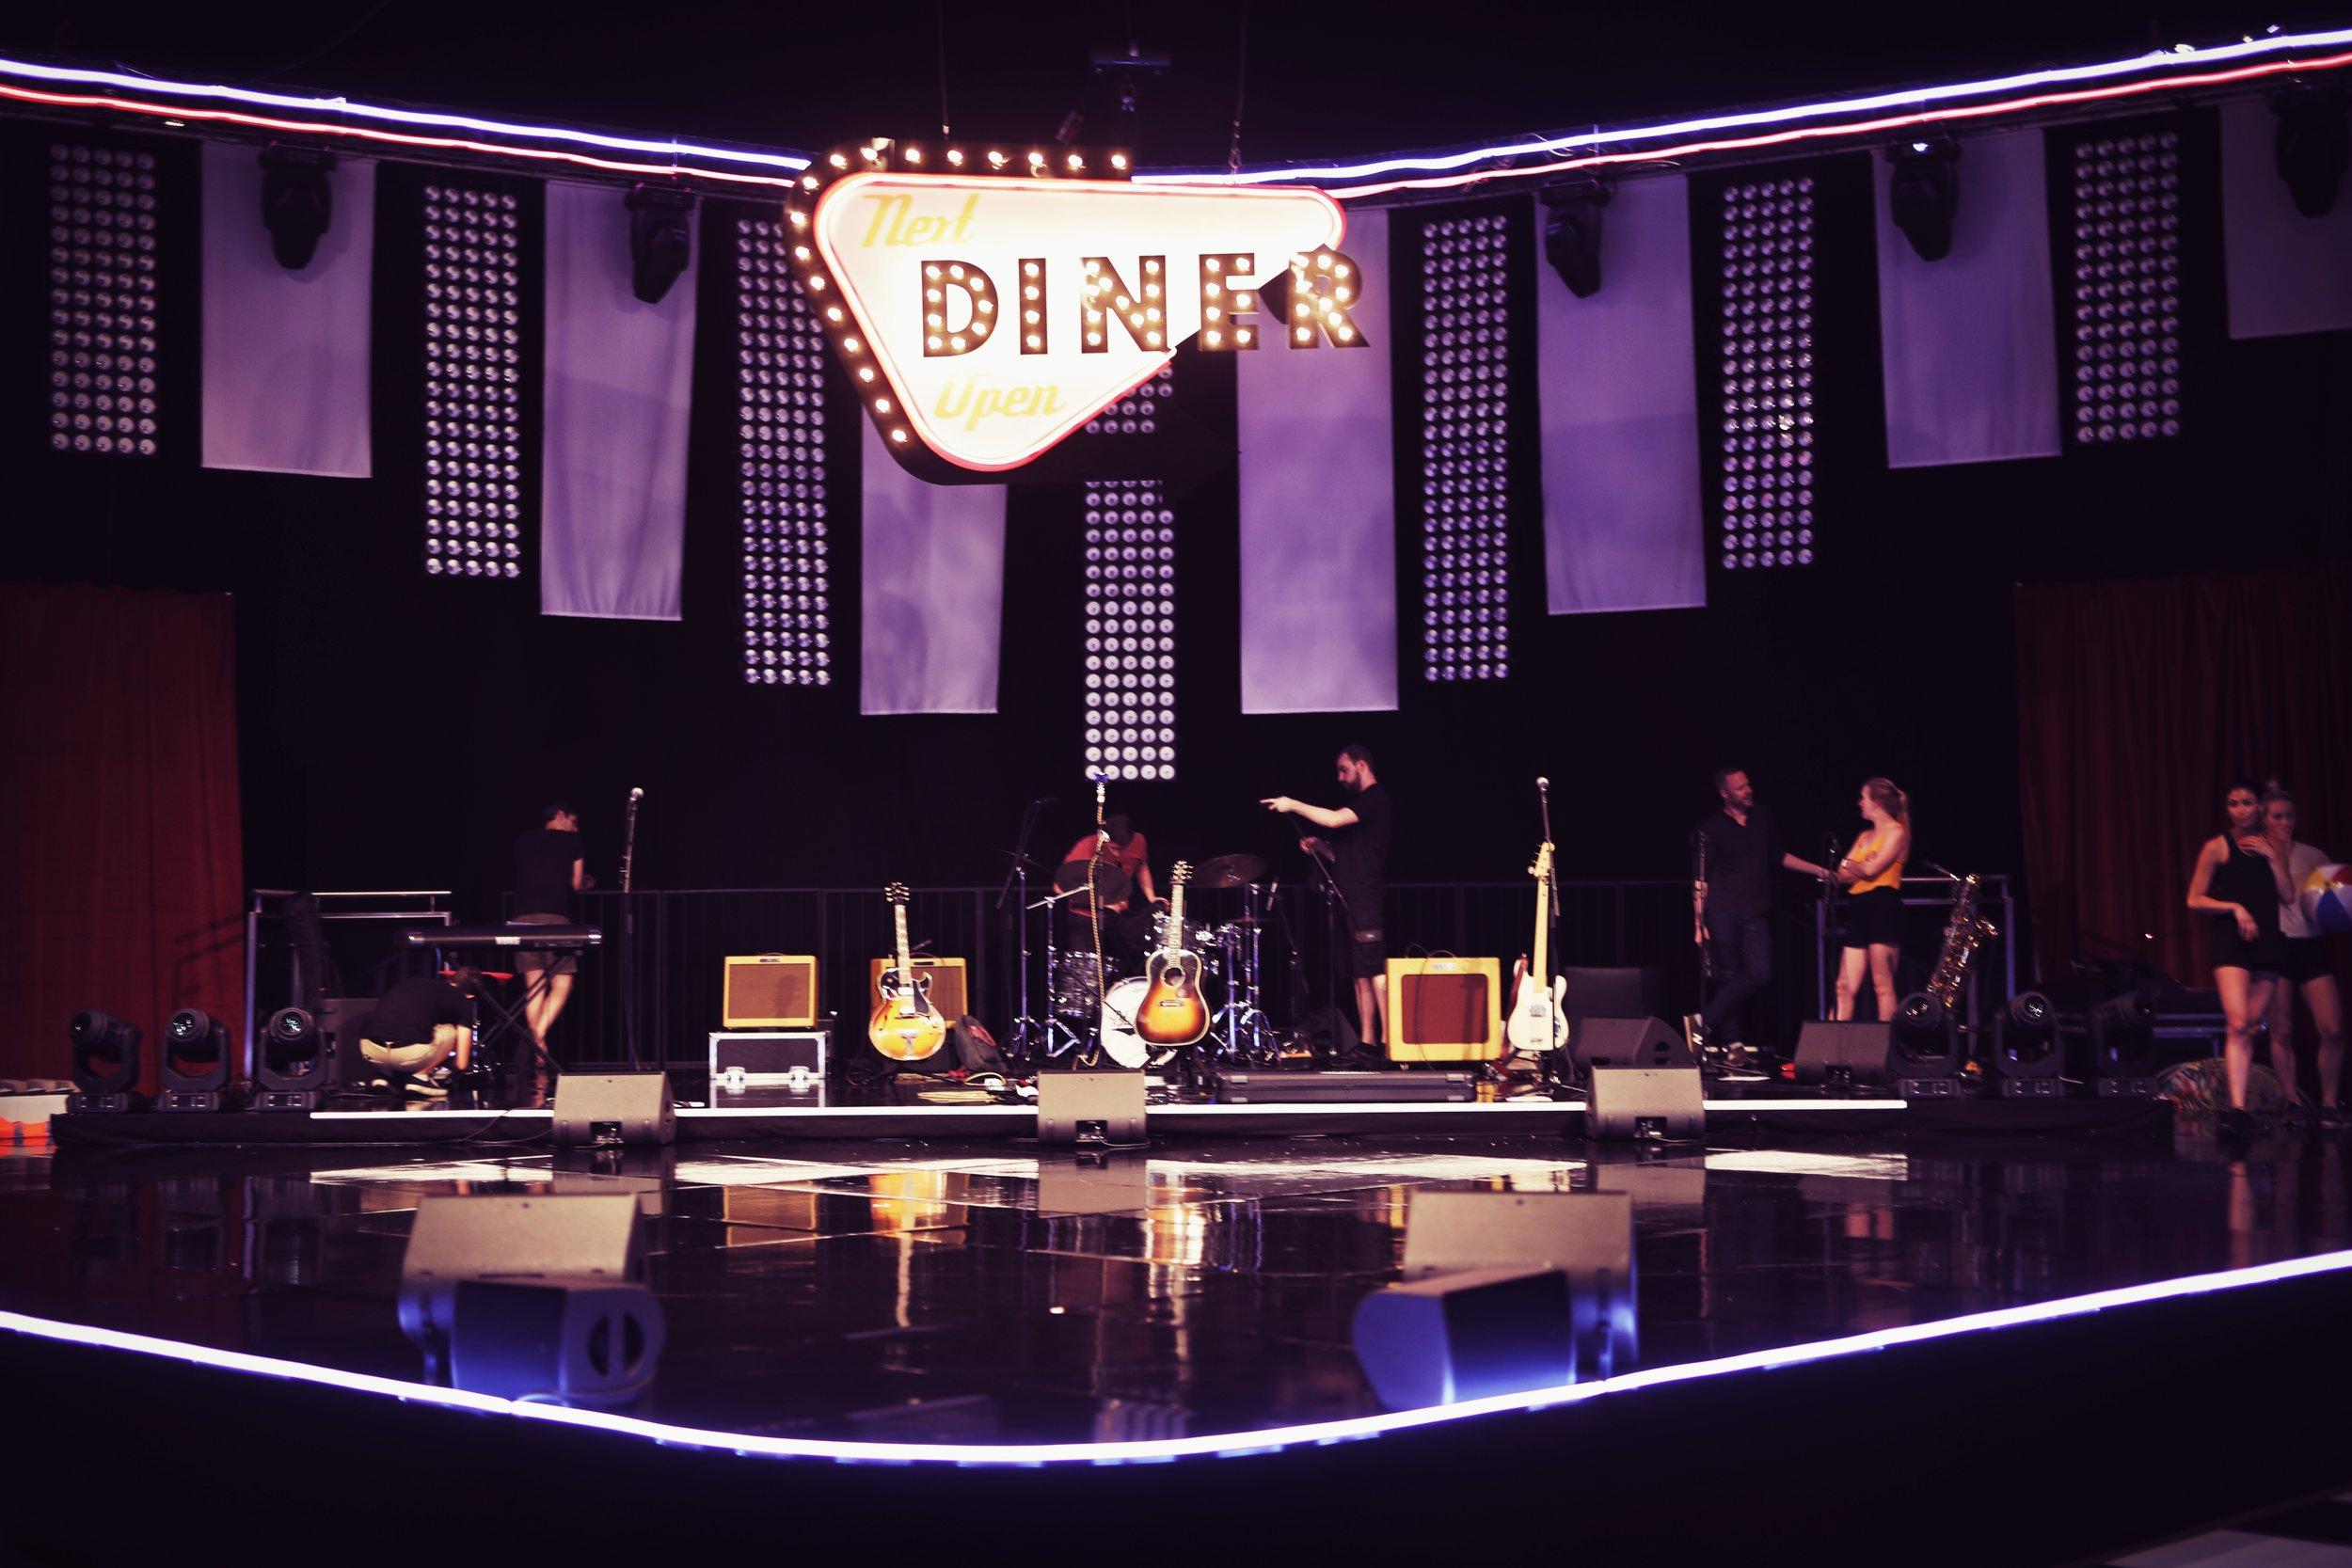 The Fifties-styled stage at the NEC Birmingham. The Bluejays set up beneath a neon Diner sign, July 2019